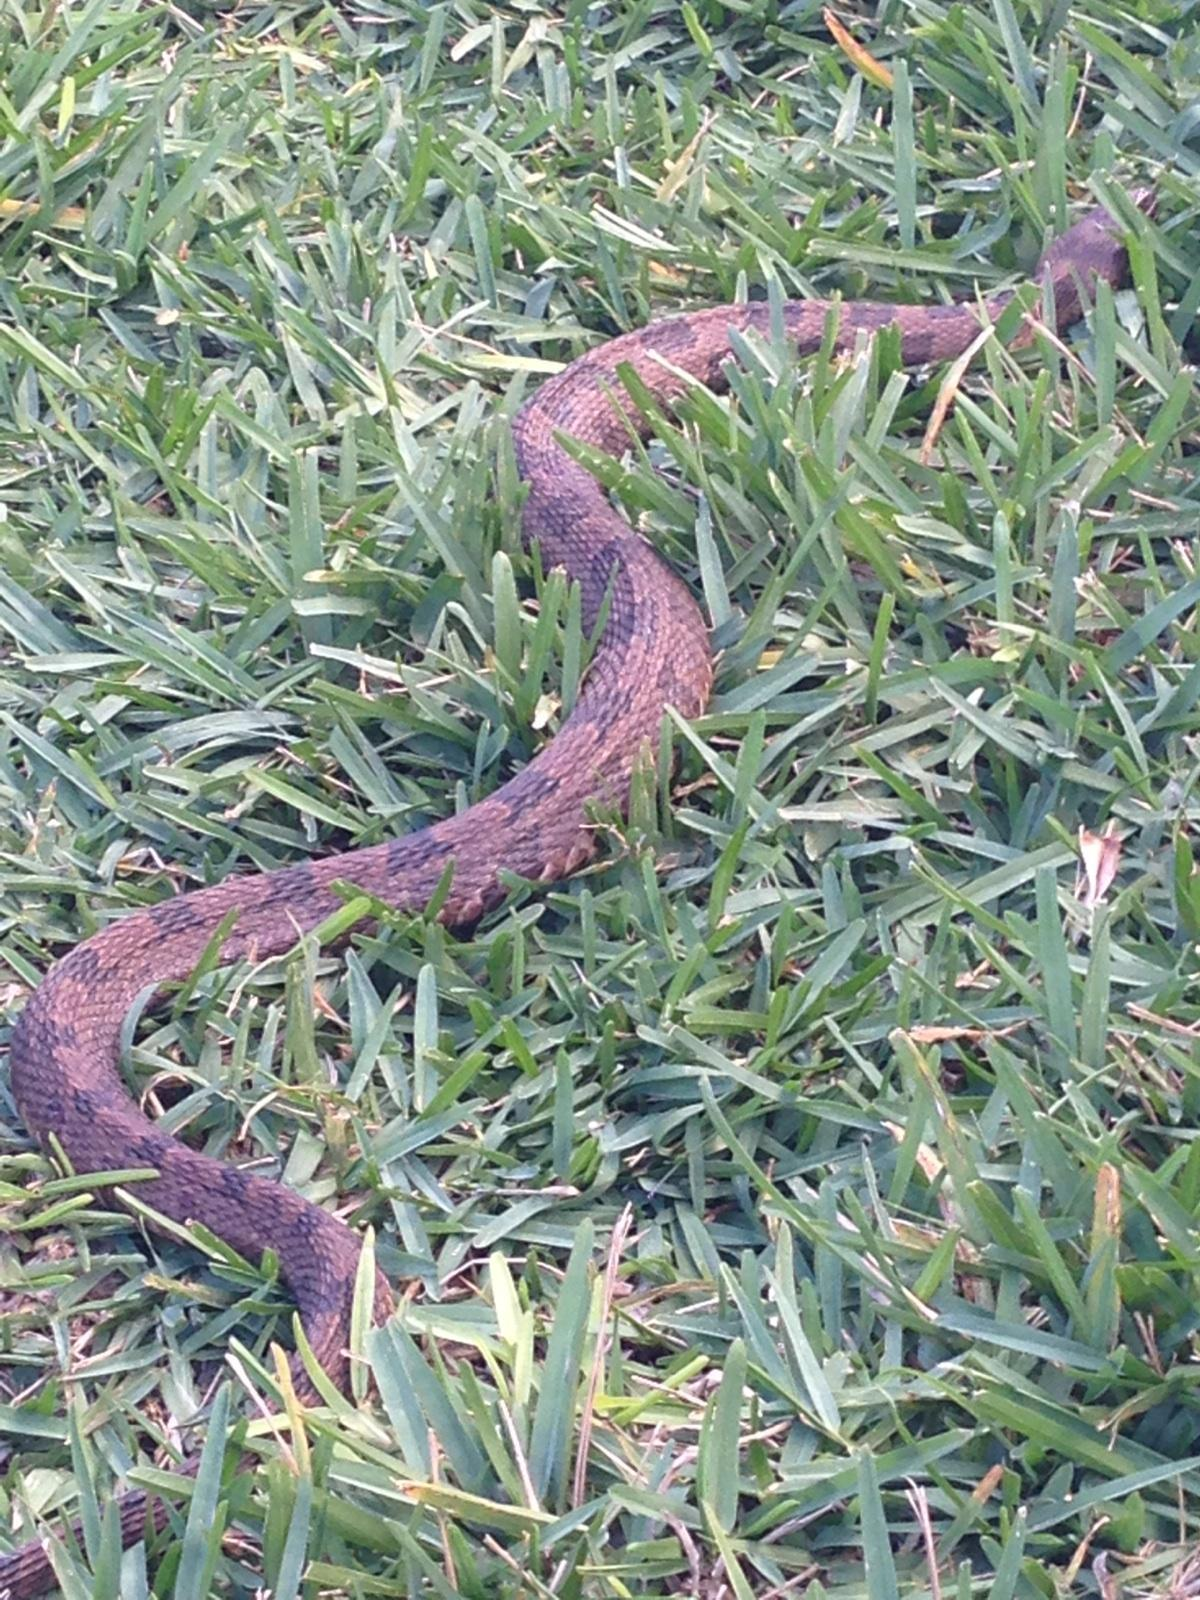 Photo of a snake texted to me by a friend of my mother's, found in their yard.